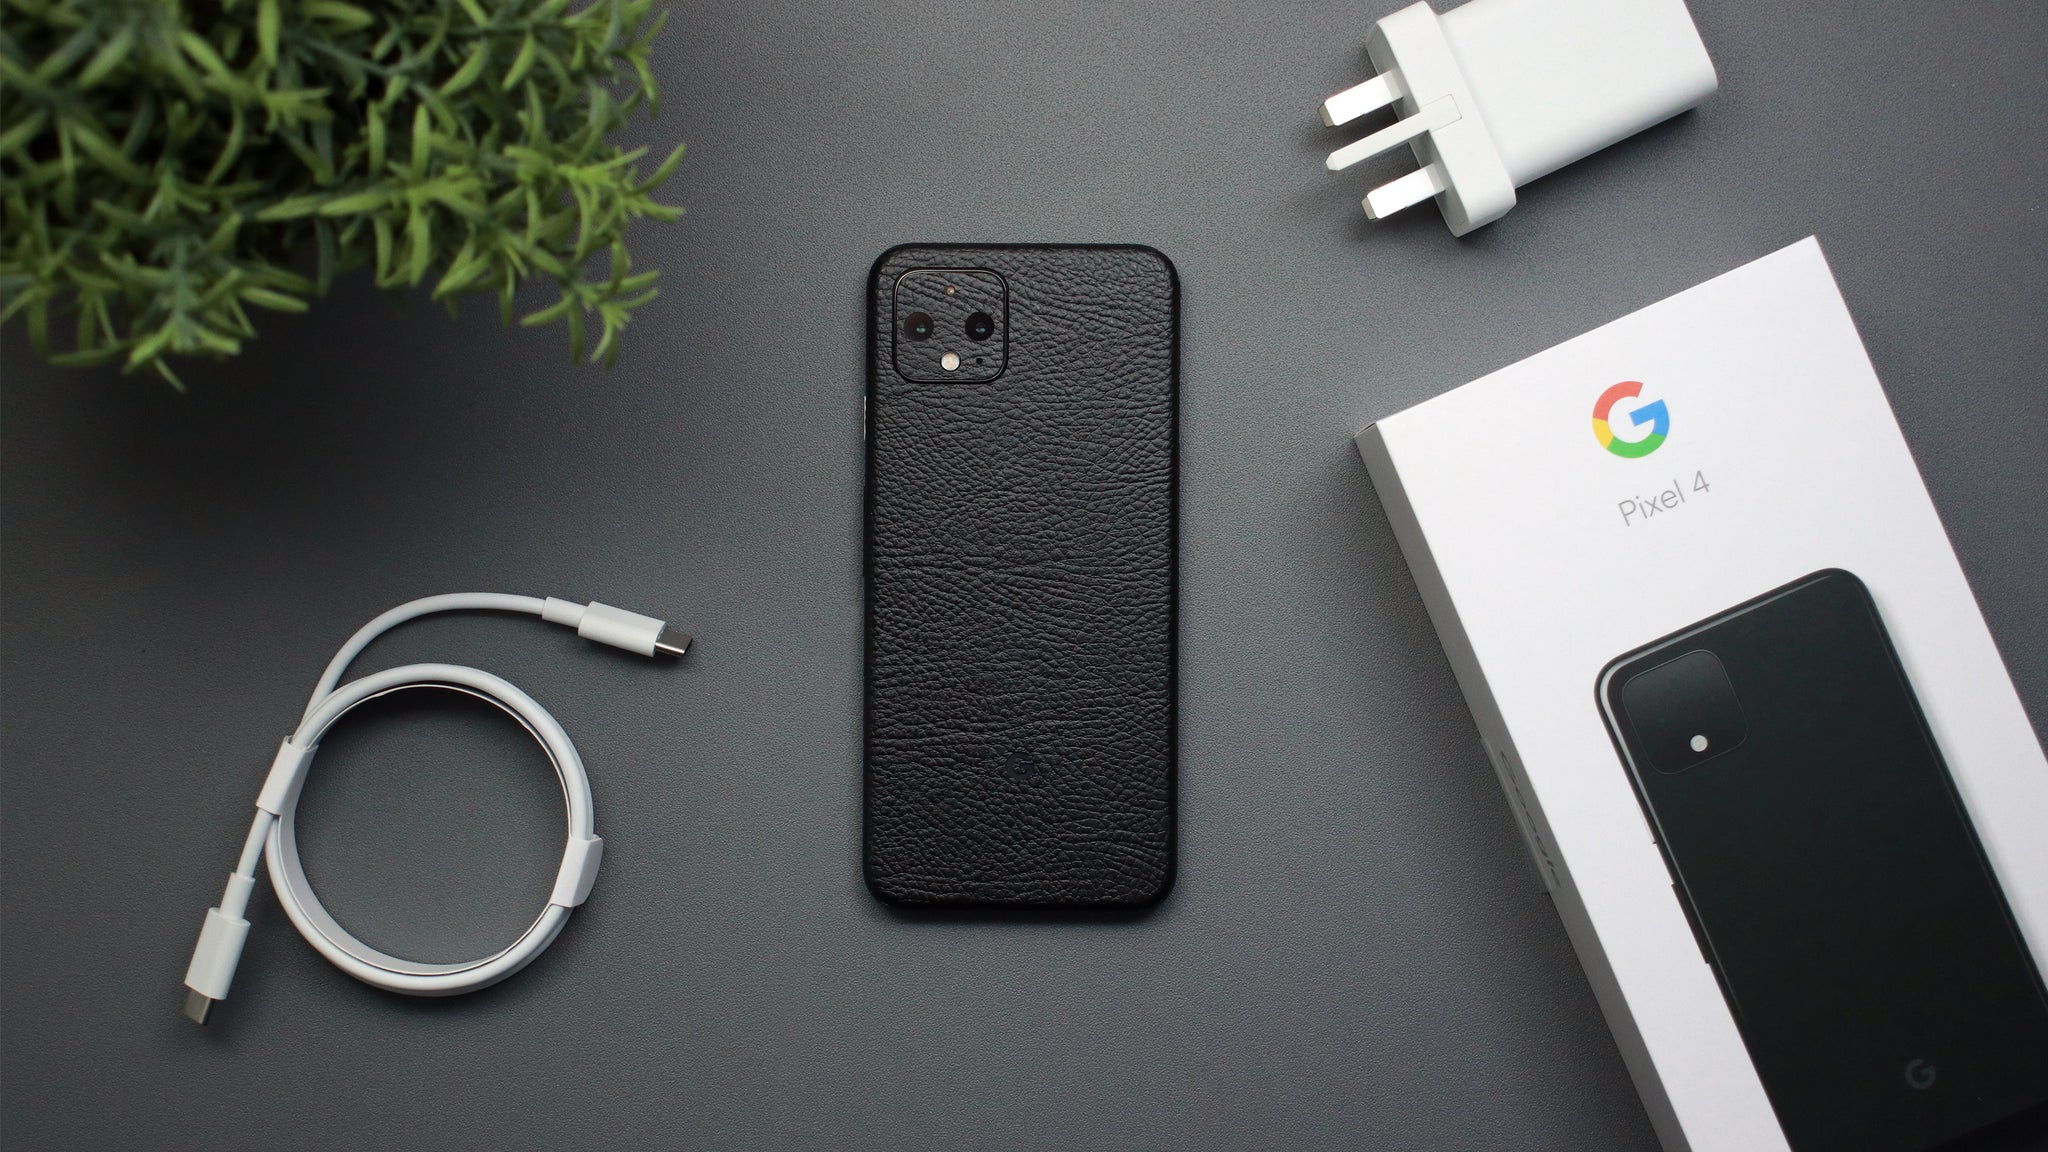 Google Pixel 4 XL Black Leather Skins